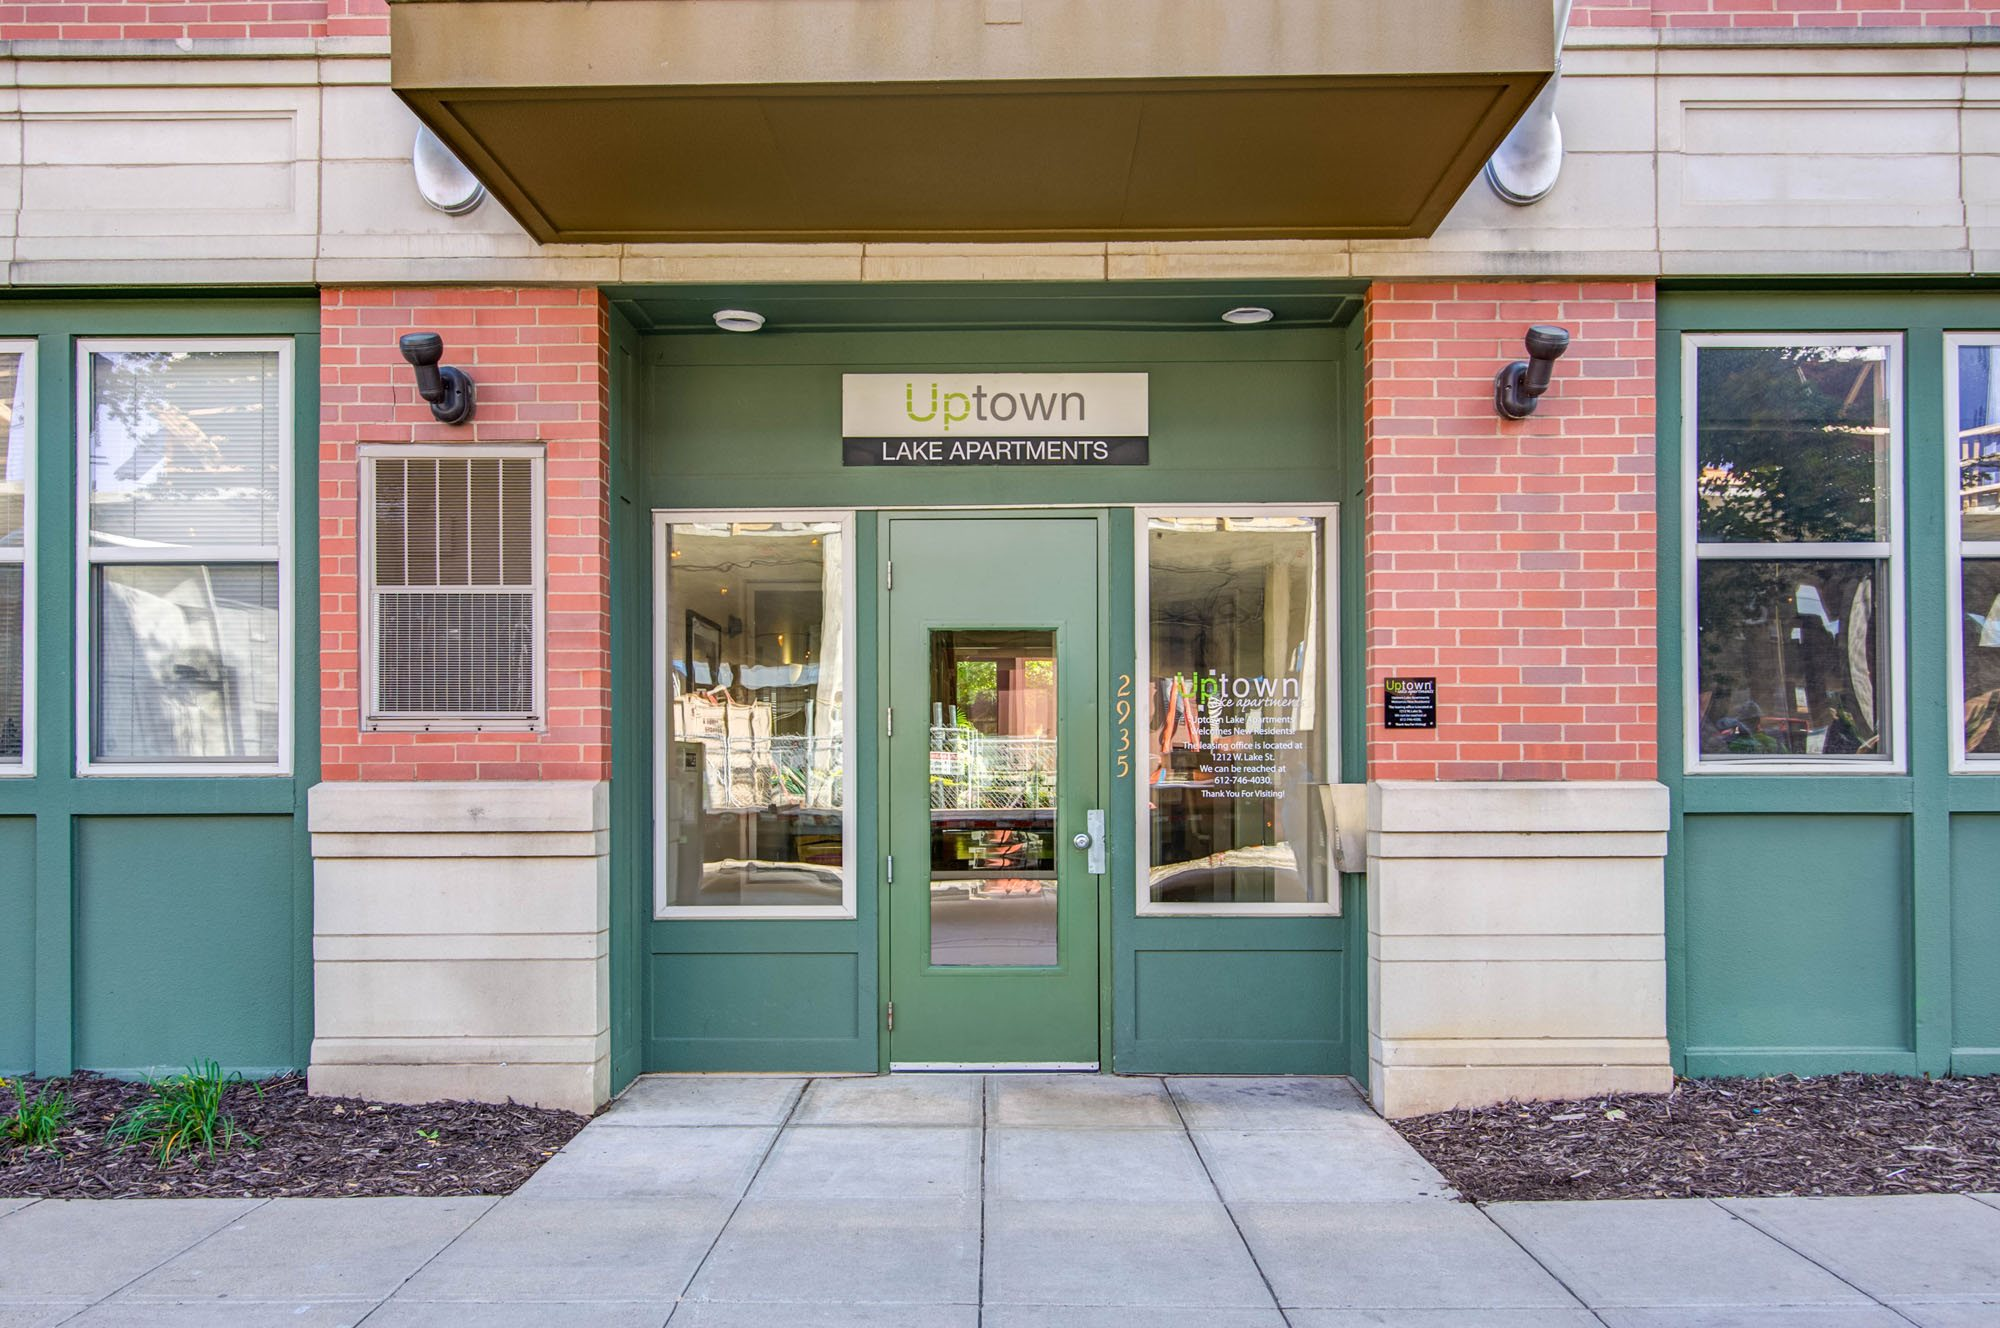 Photos And Video Of Uptown Lake Apartments In Minneapolis Mn